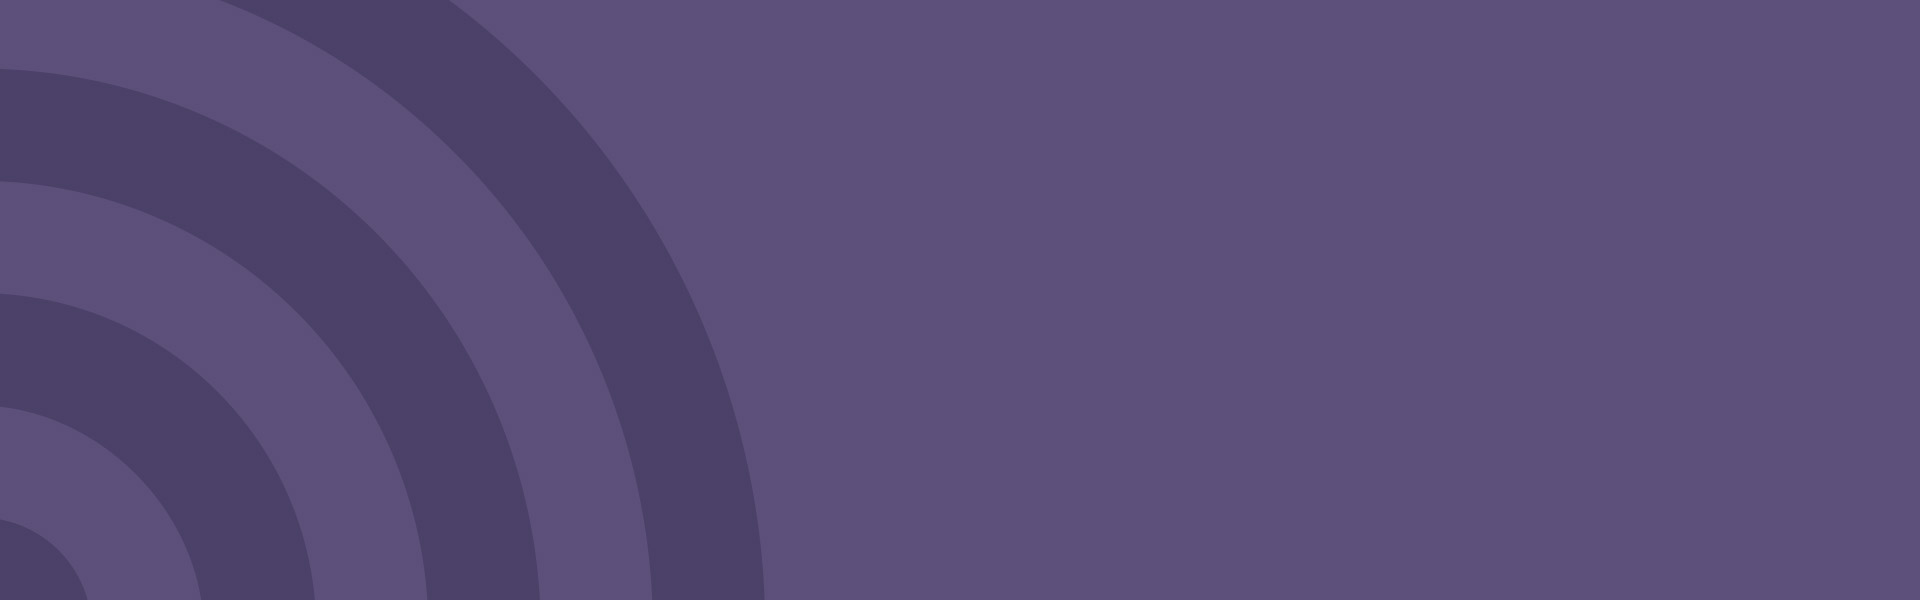 Digital Banking Banner purple